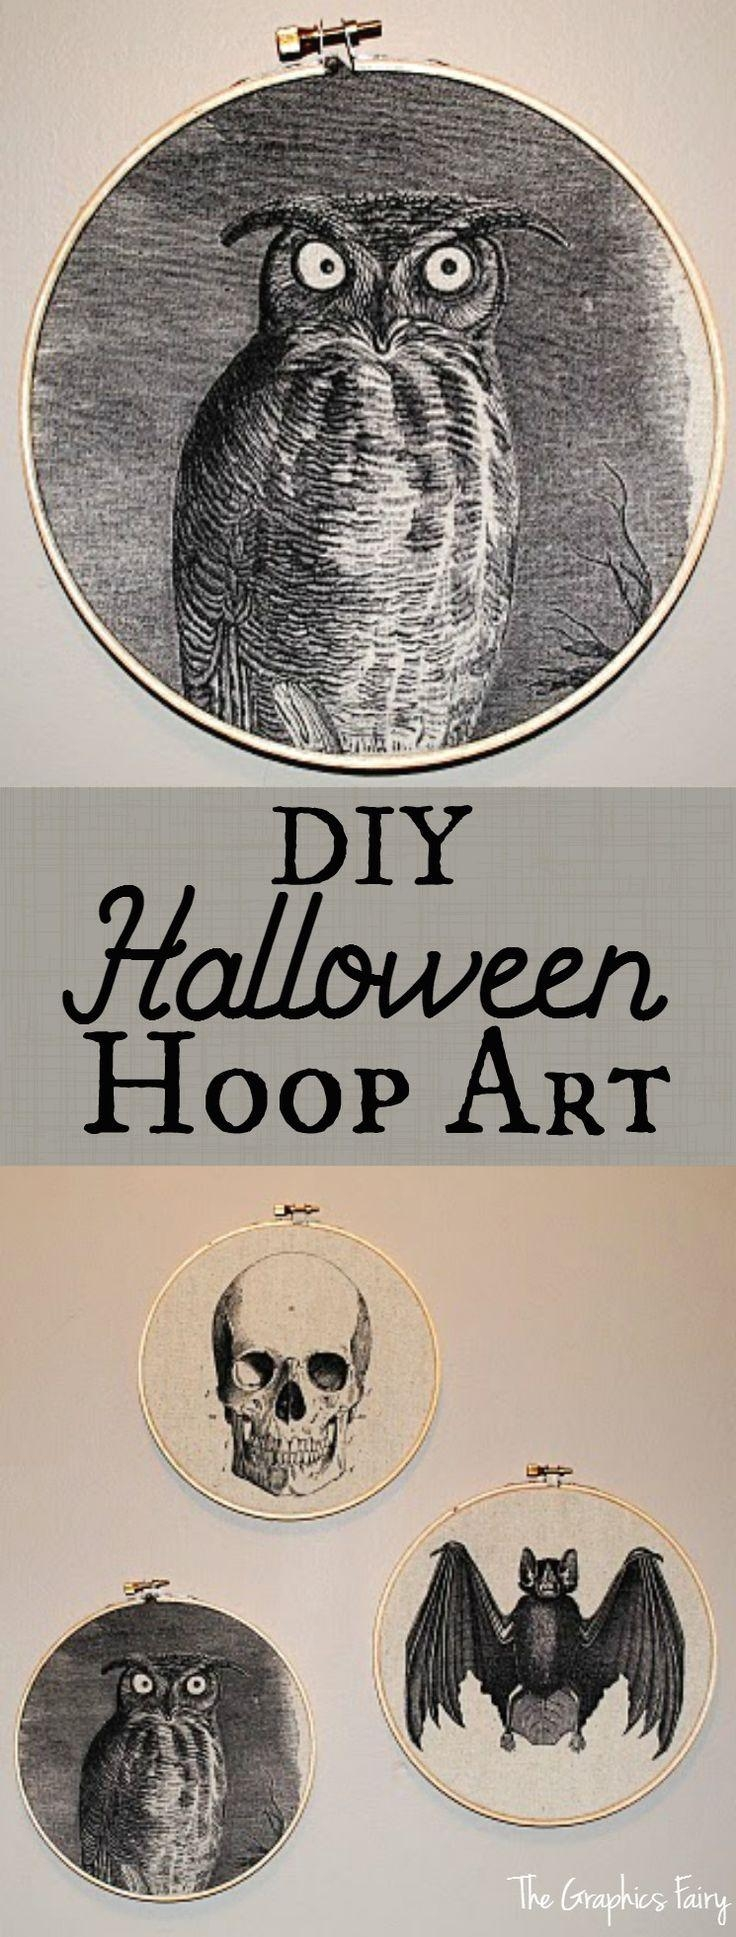 Best 25+ Halloween Wall Decor Ideas On Pinterest Within Ouija Board Wall Art (View 18 of 20)